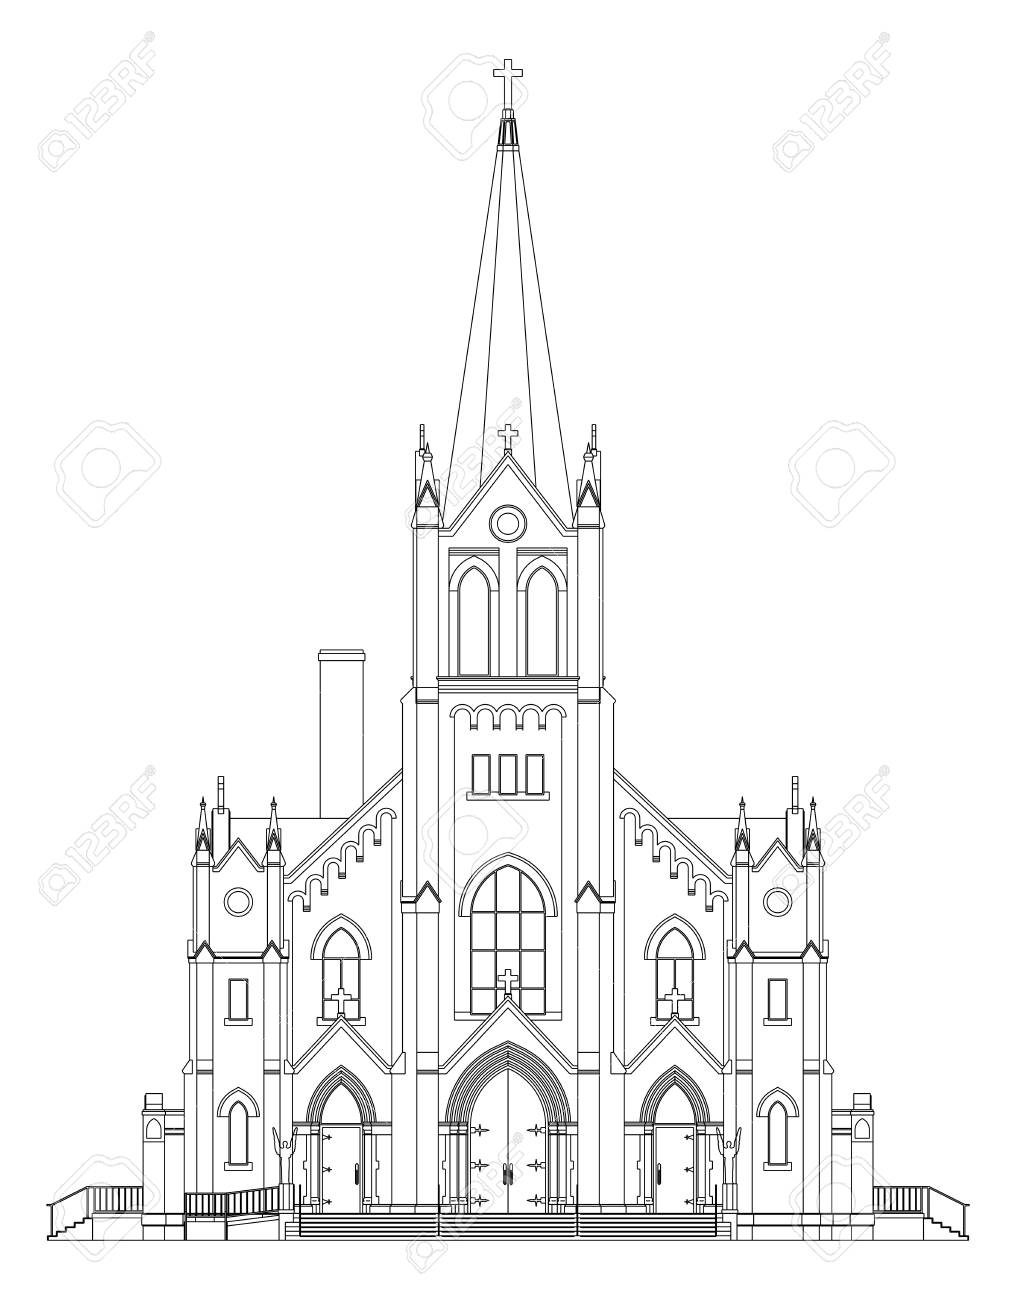 The Building Of The Catholic Church Views From Different Sides Royalty Free Cliparts Vectors And Stock Illustration Image 94184517